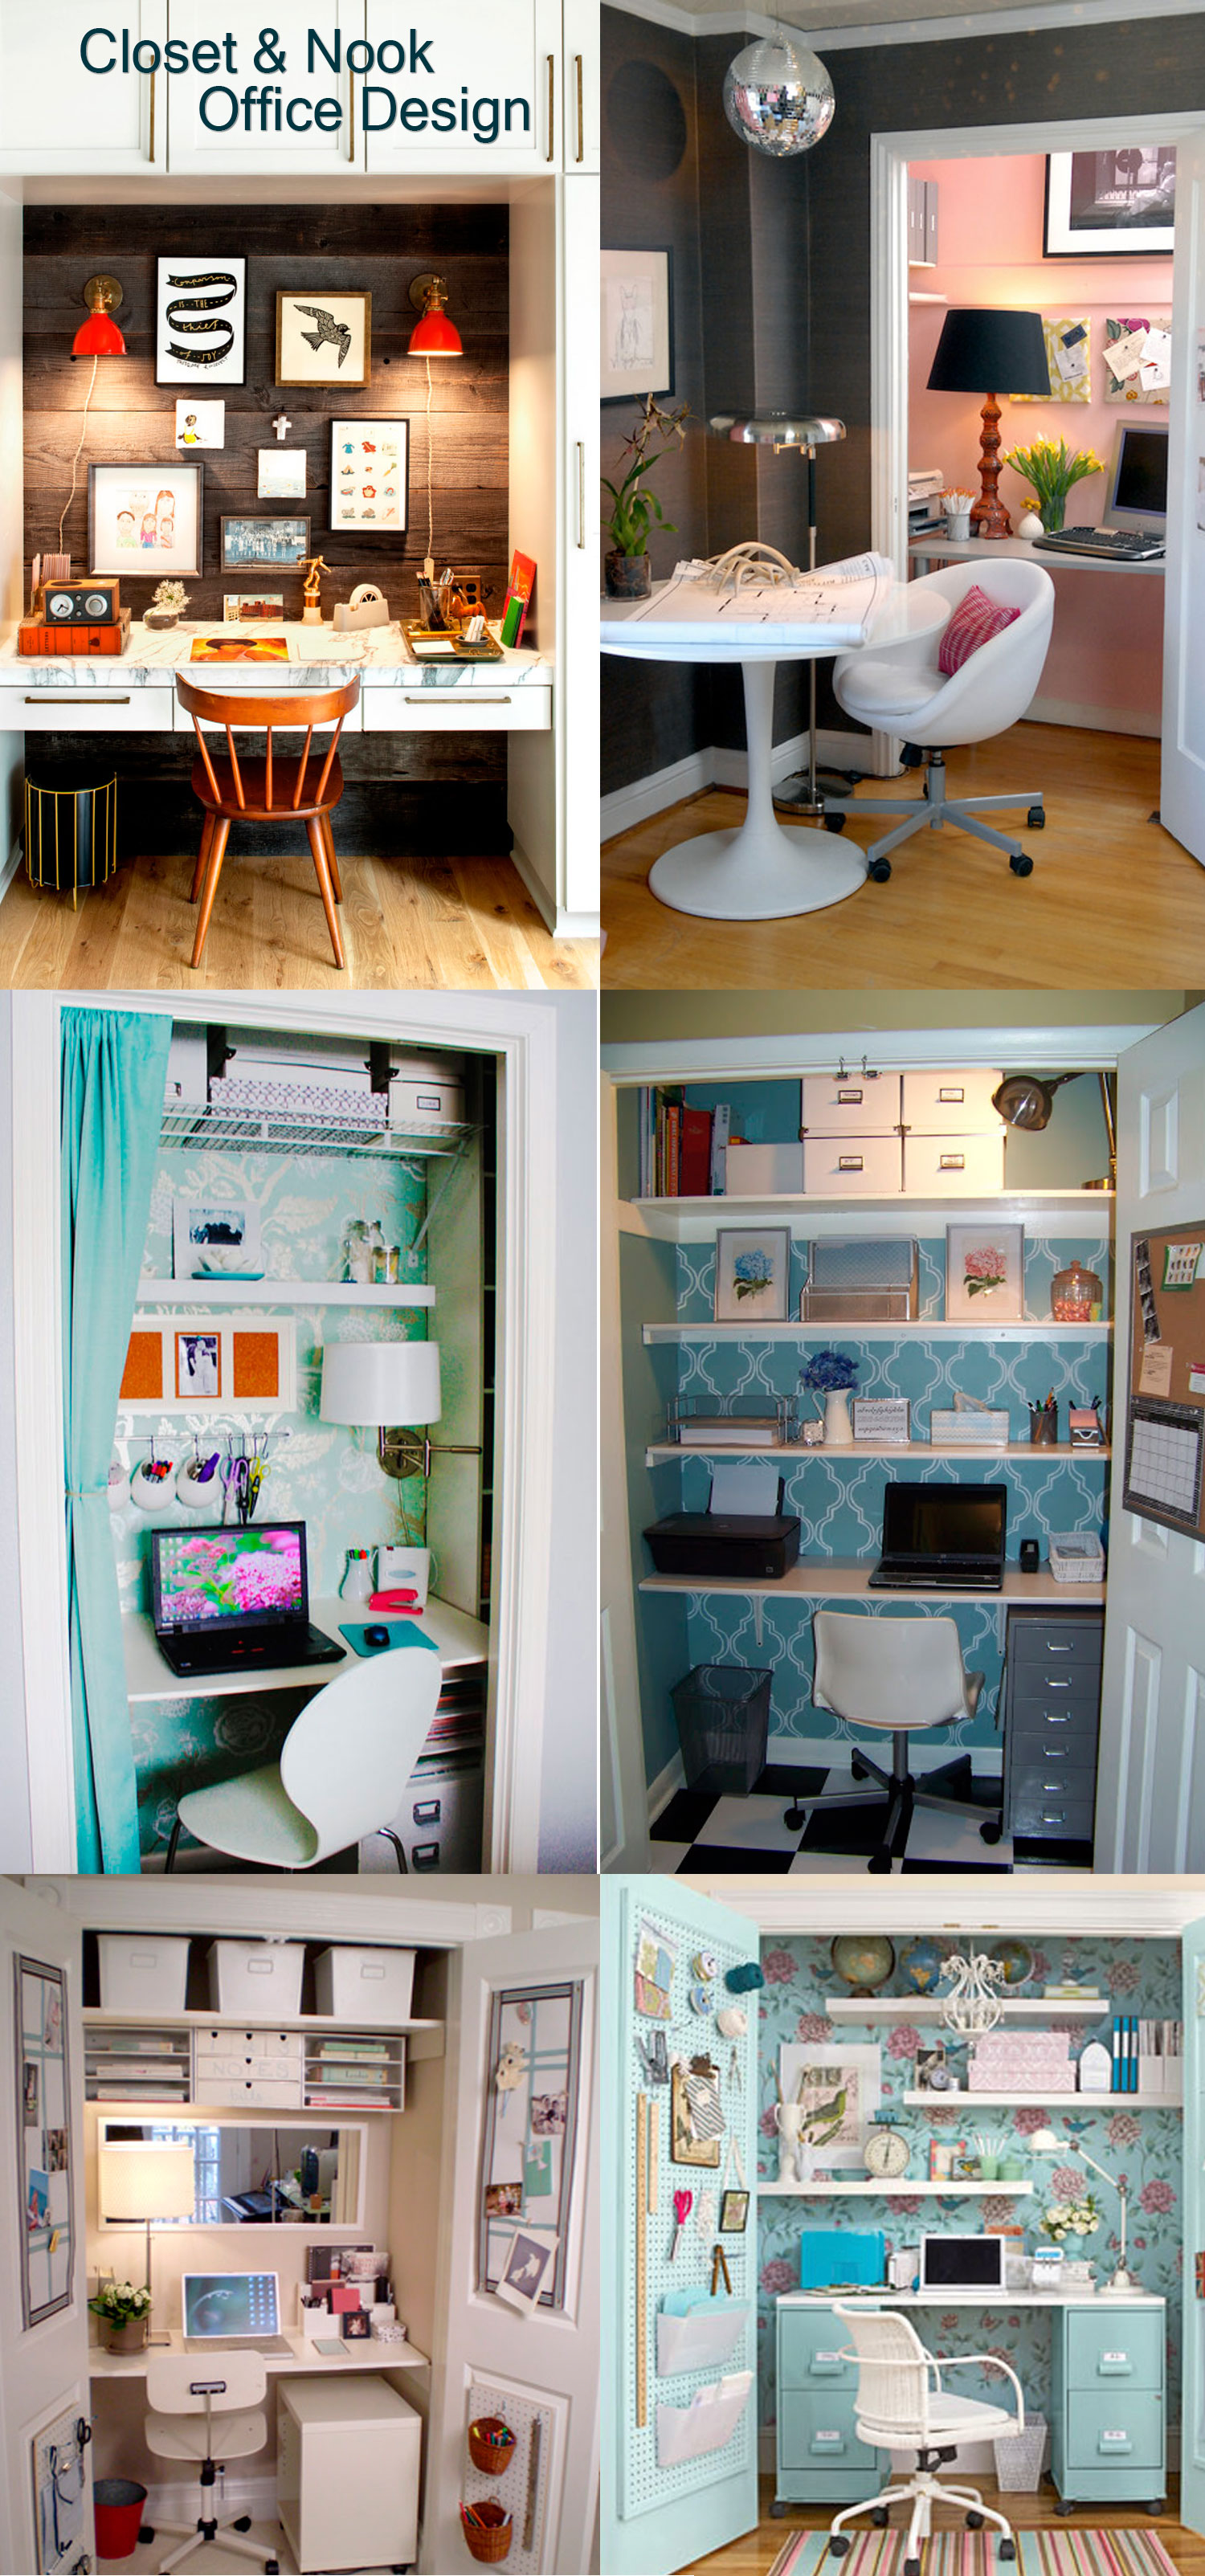 Closet & Nook Office Design